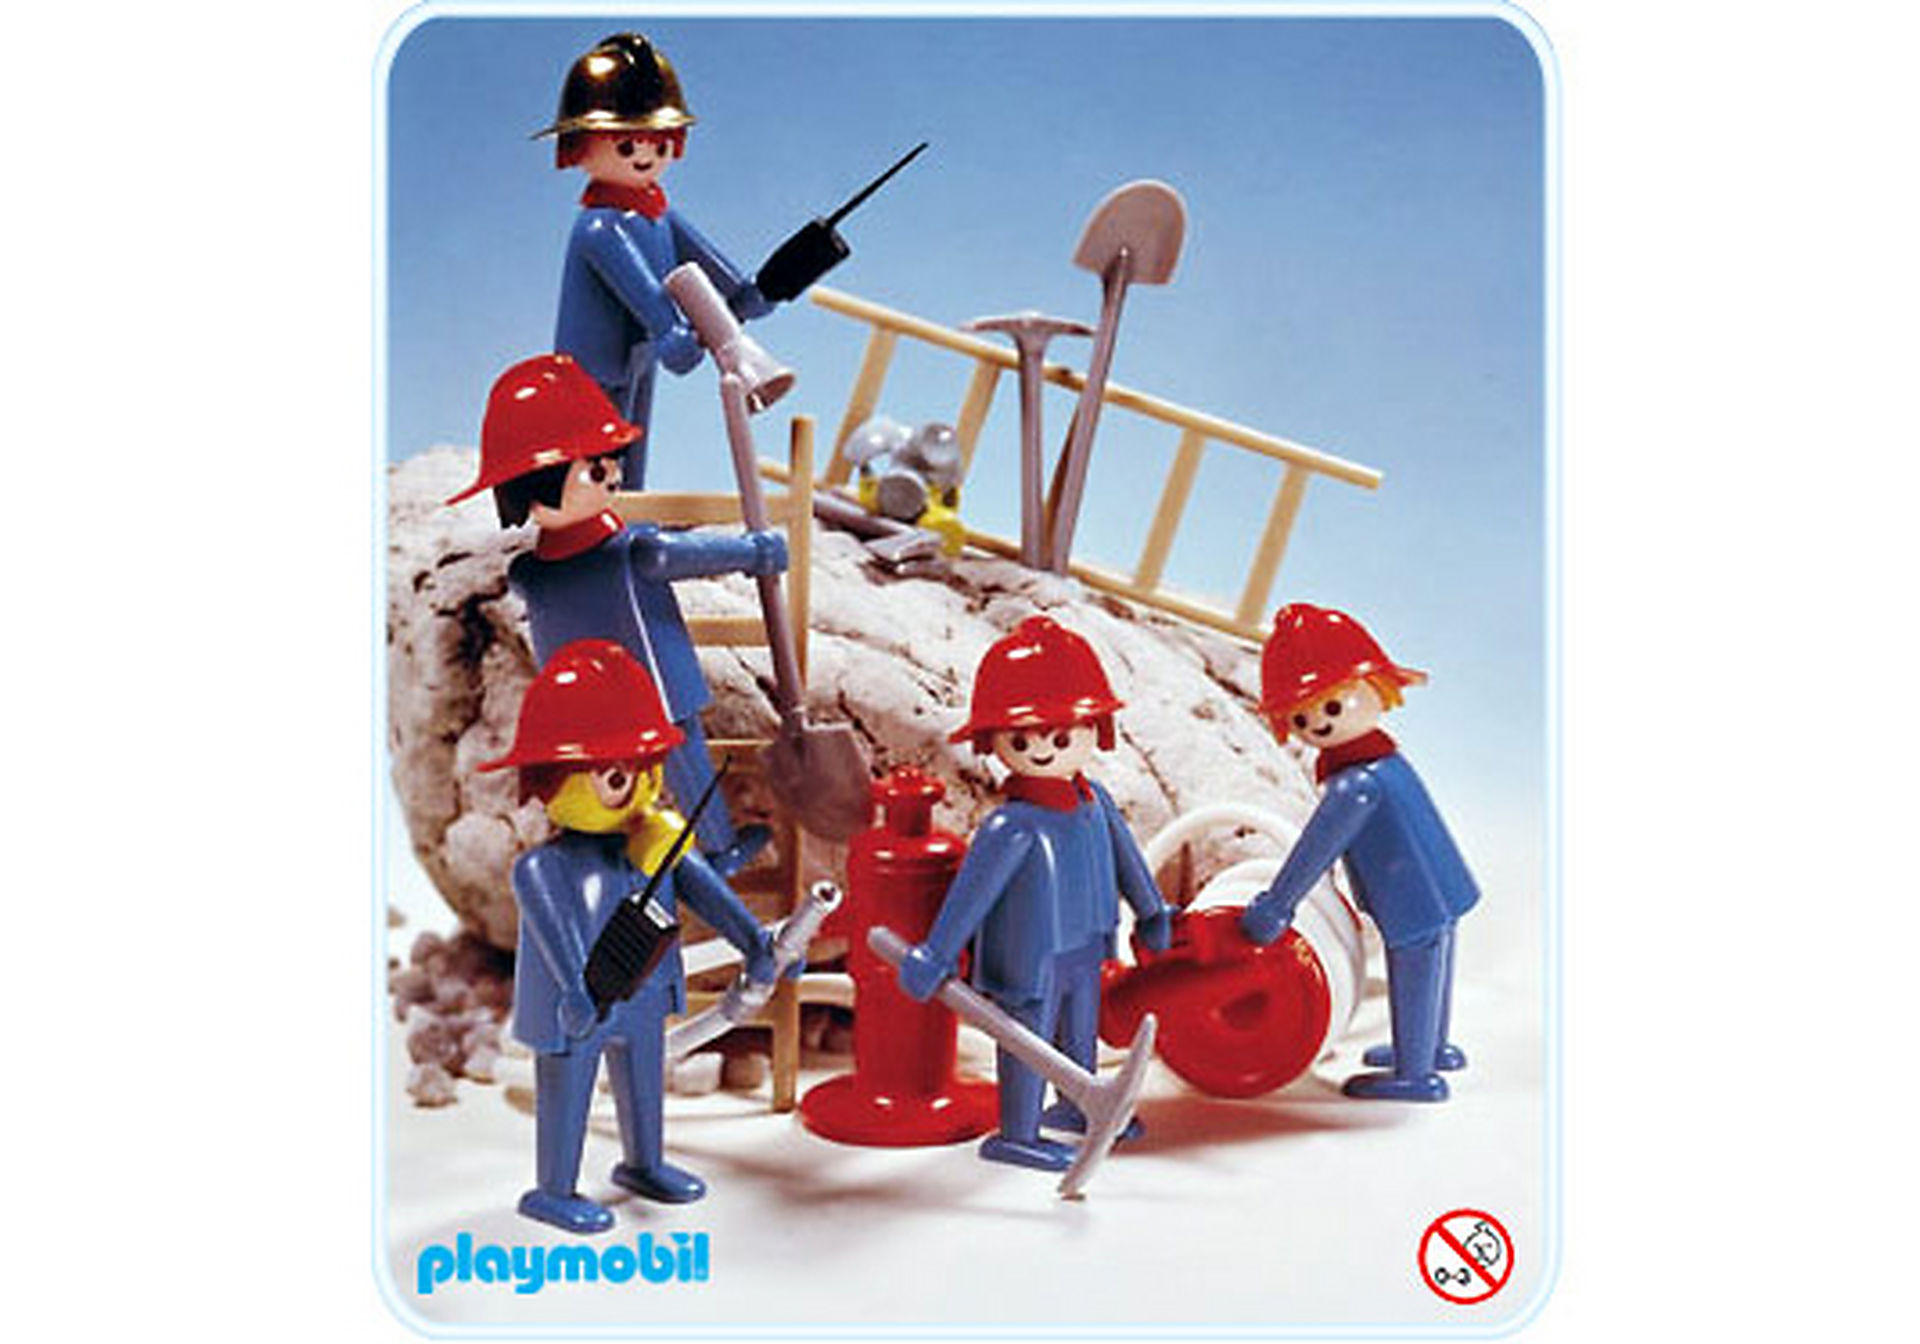 http://media.playmobil.com/i/playmobil/3234-A_product_detail/Feuerwehr - Set